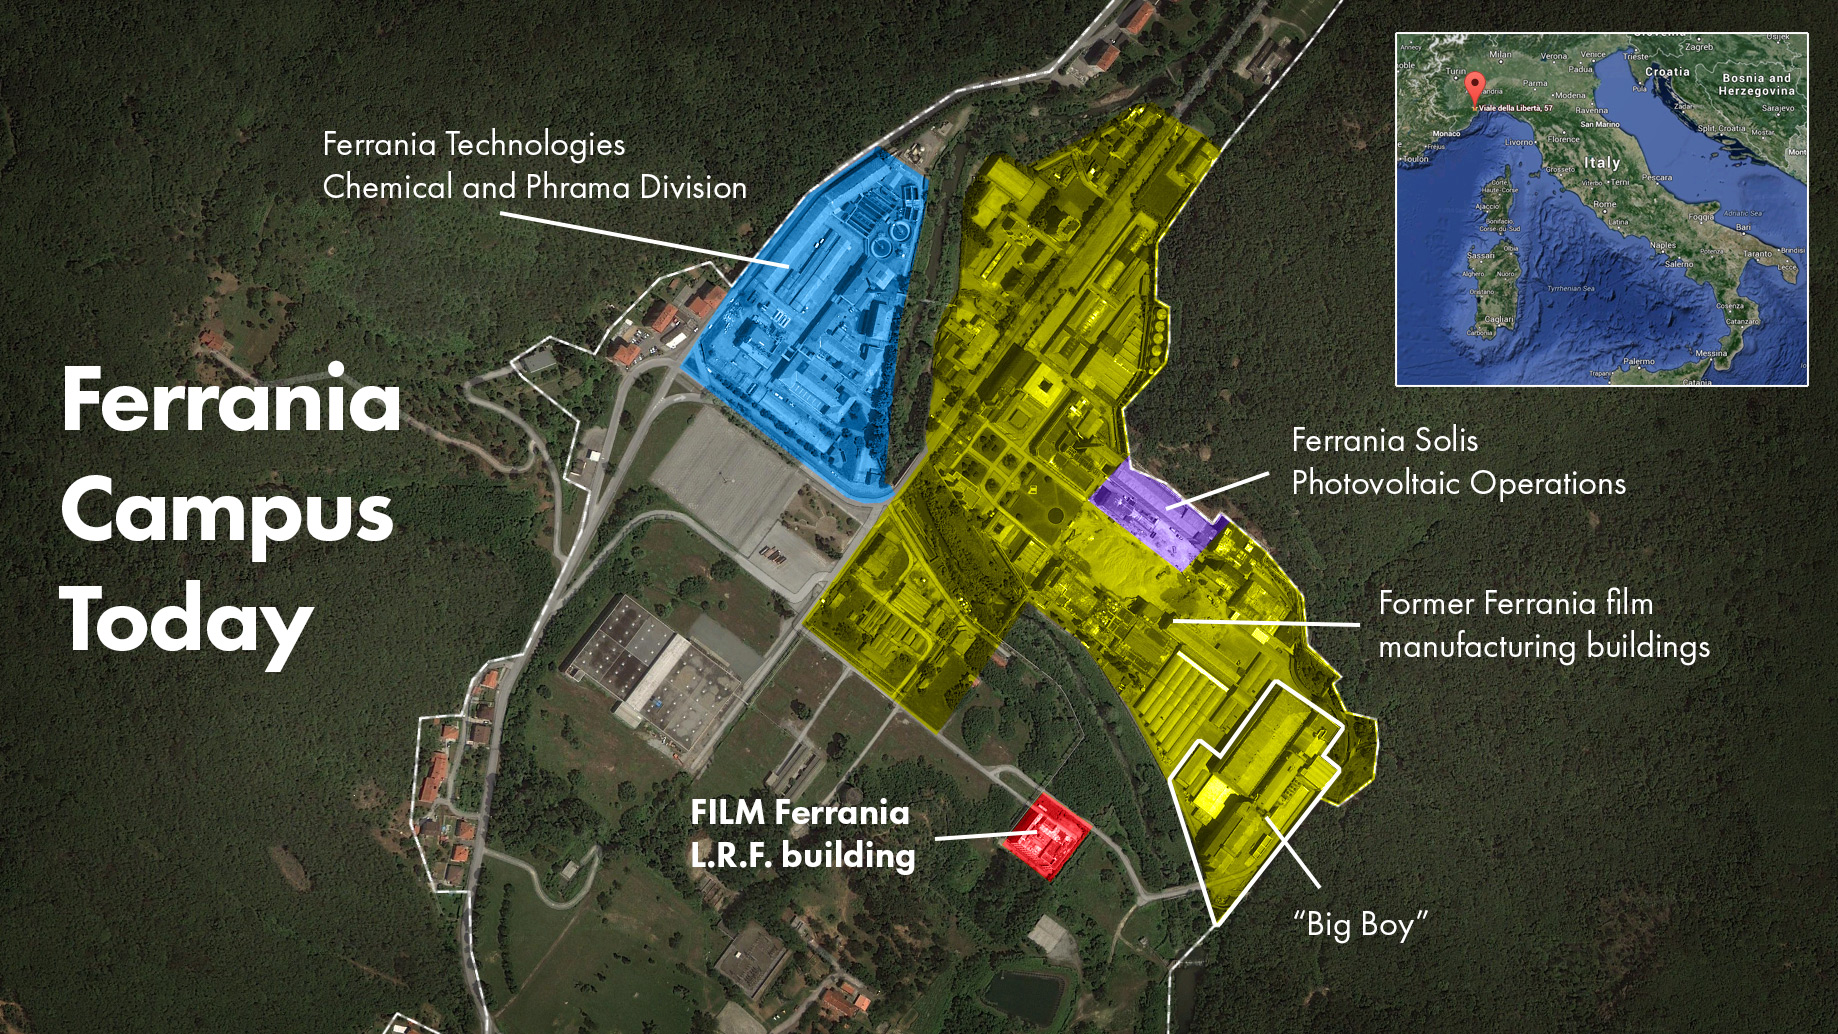 This map should help you visualize the location and scale of Ferrania's campus - click to enlarge.